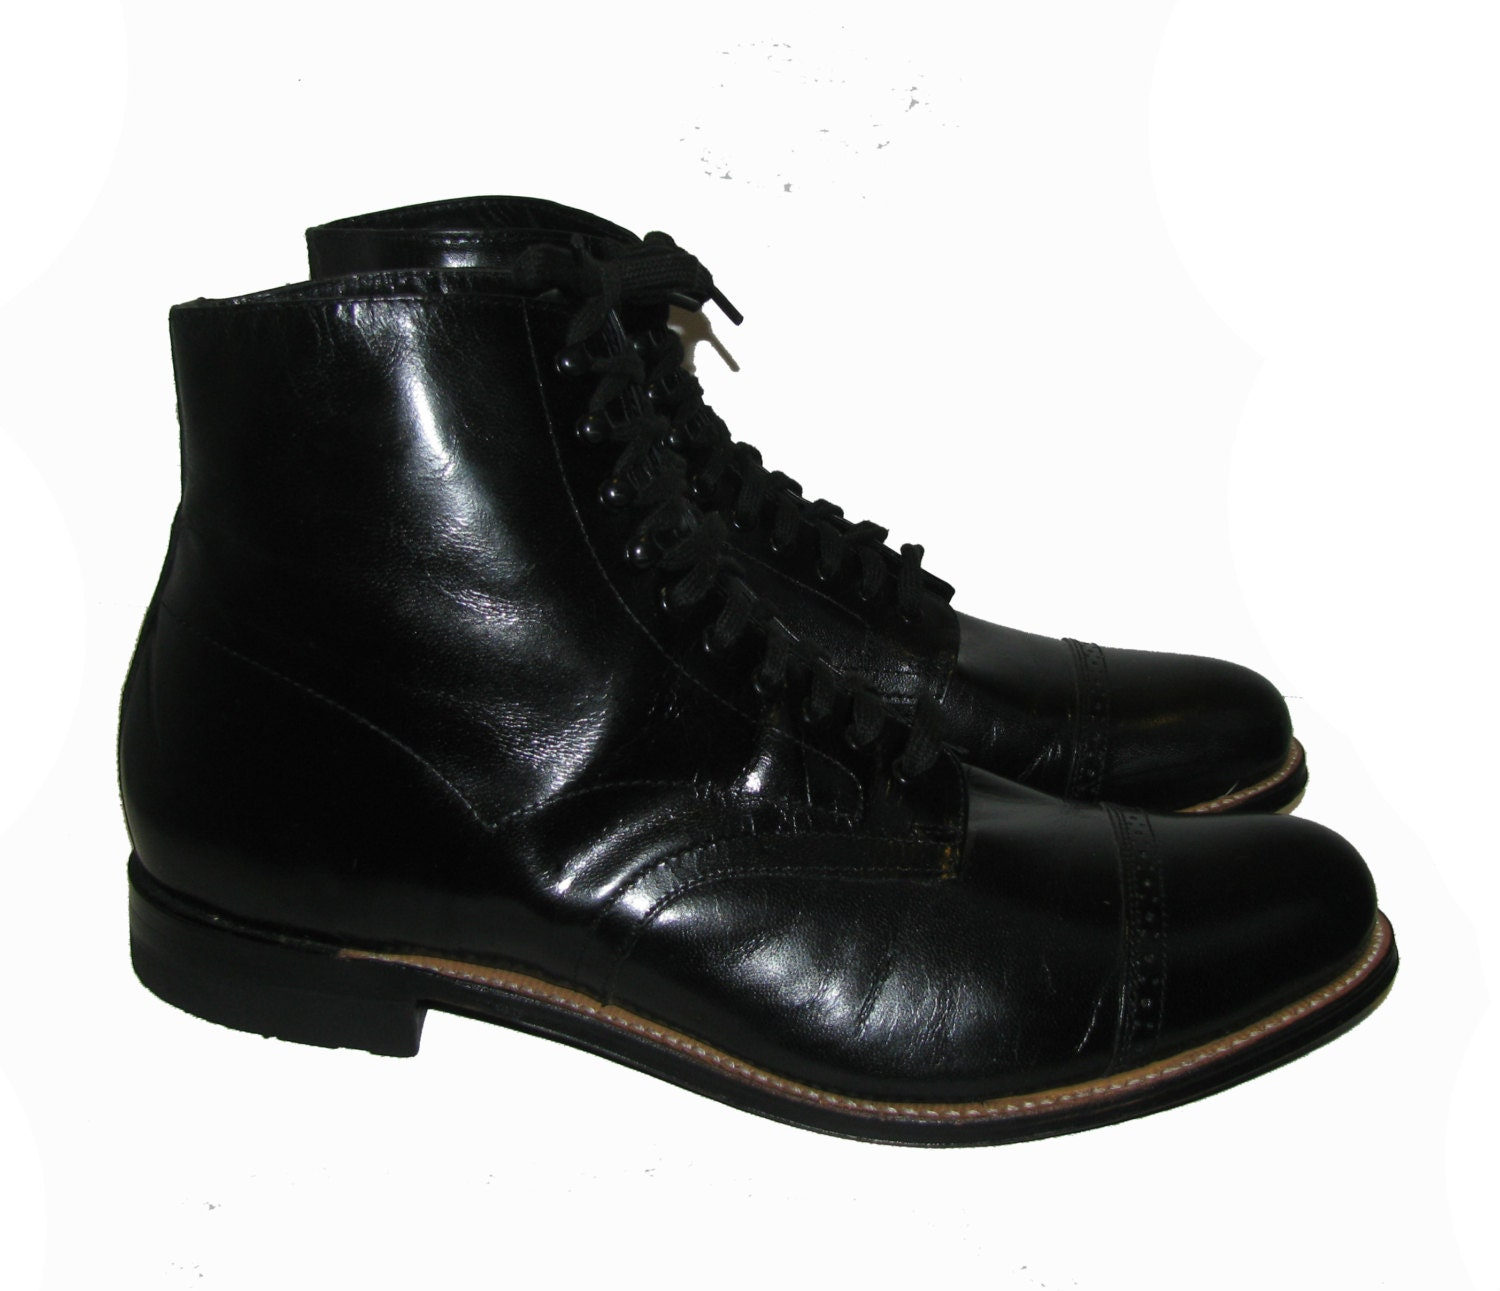 vintage comfort boots mens black leather